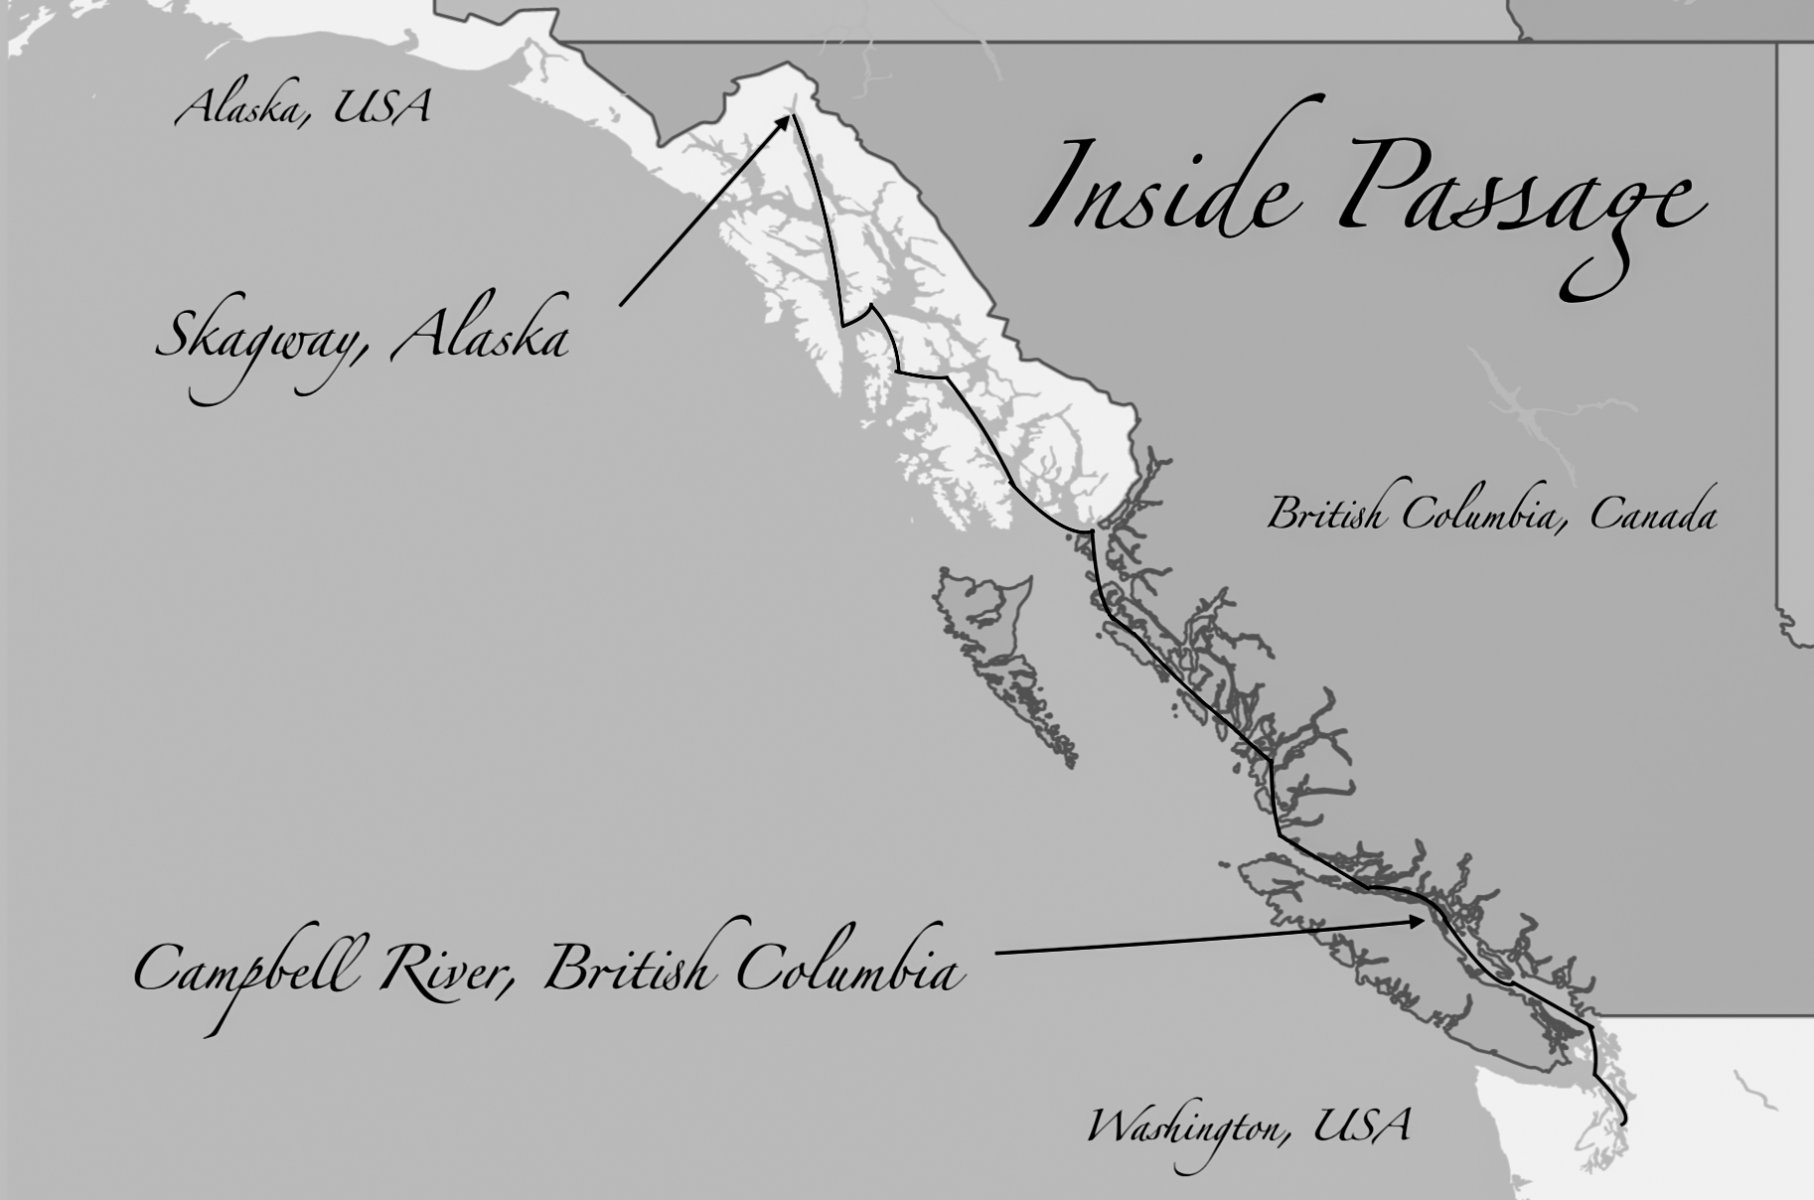 The Inside Passage map